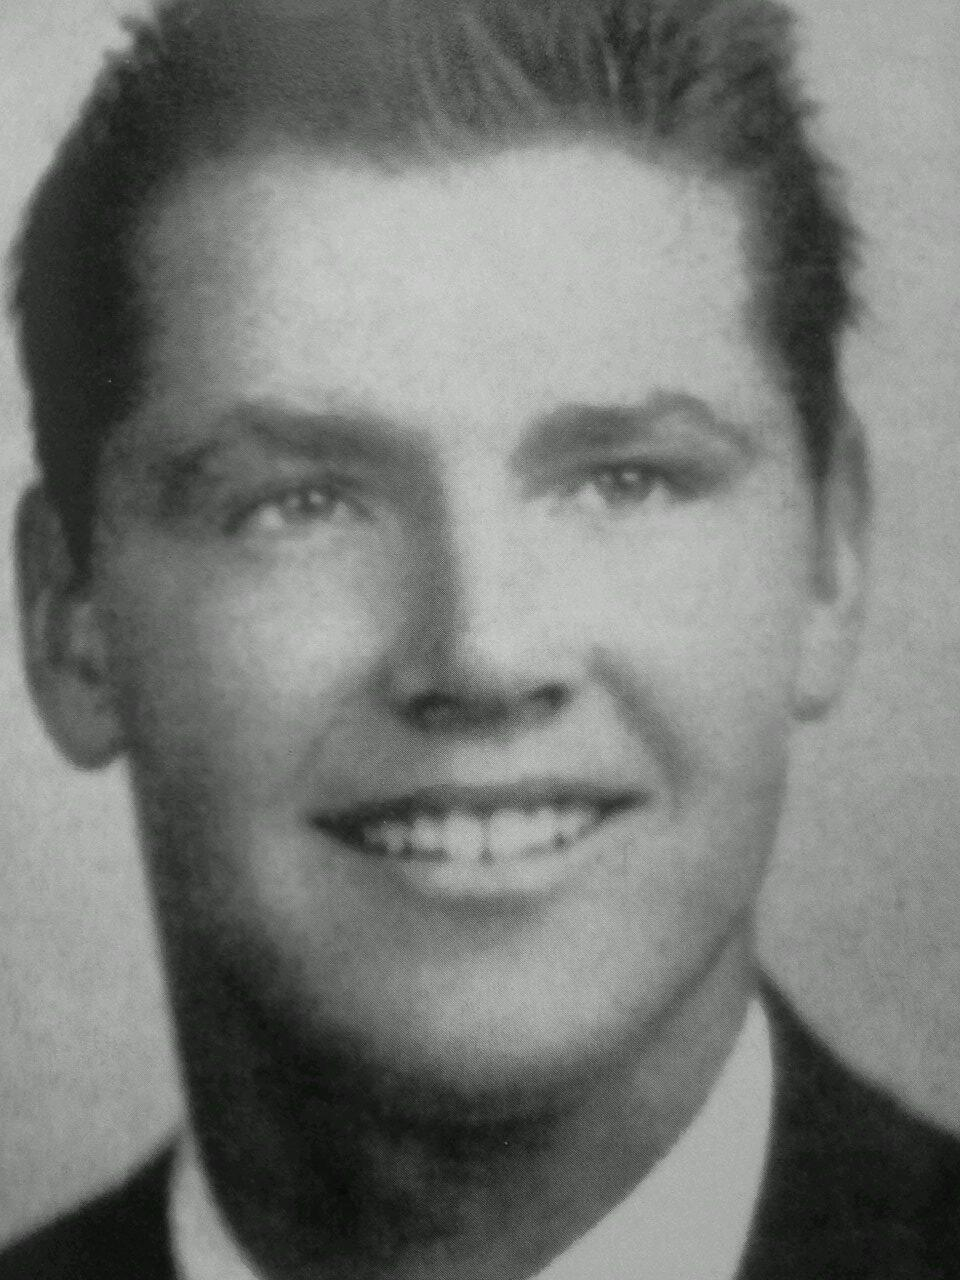 Twitter / mccrabb_will: JACK'S 1954 yearbook photo ...